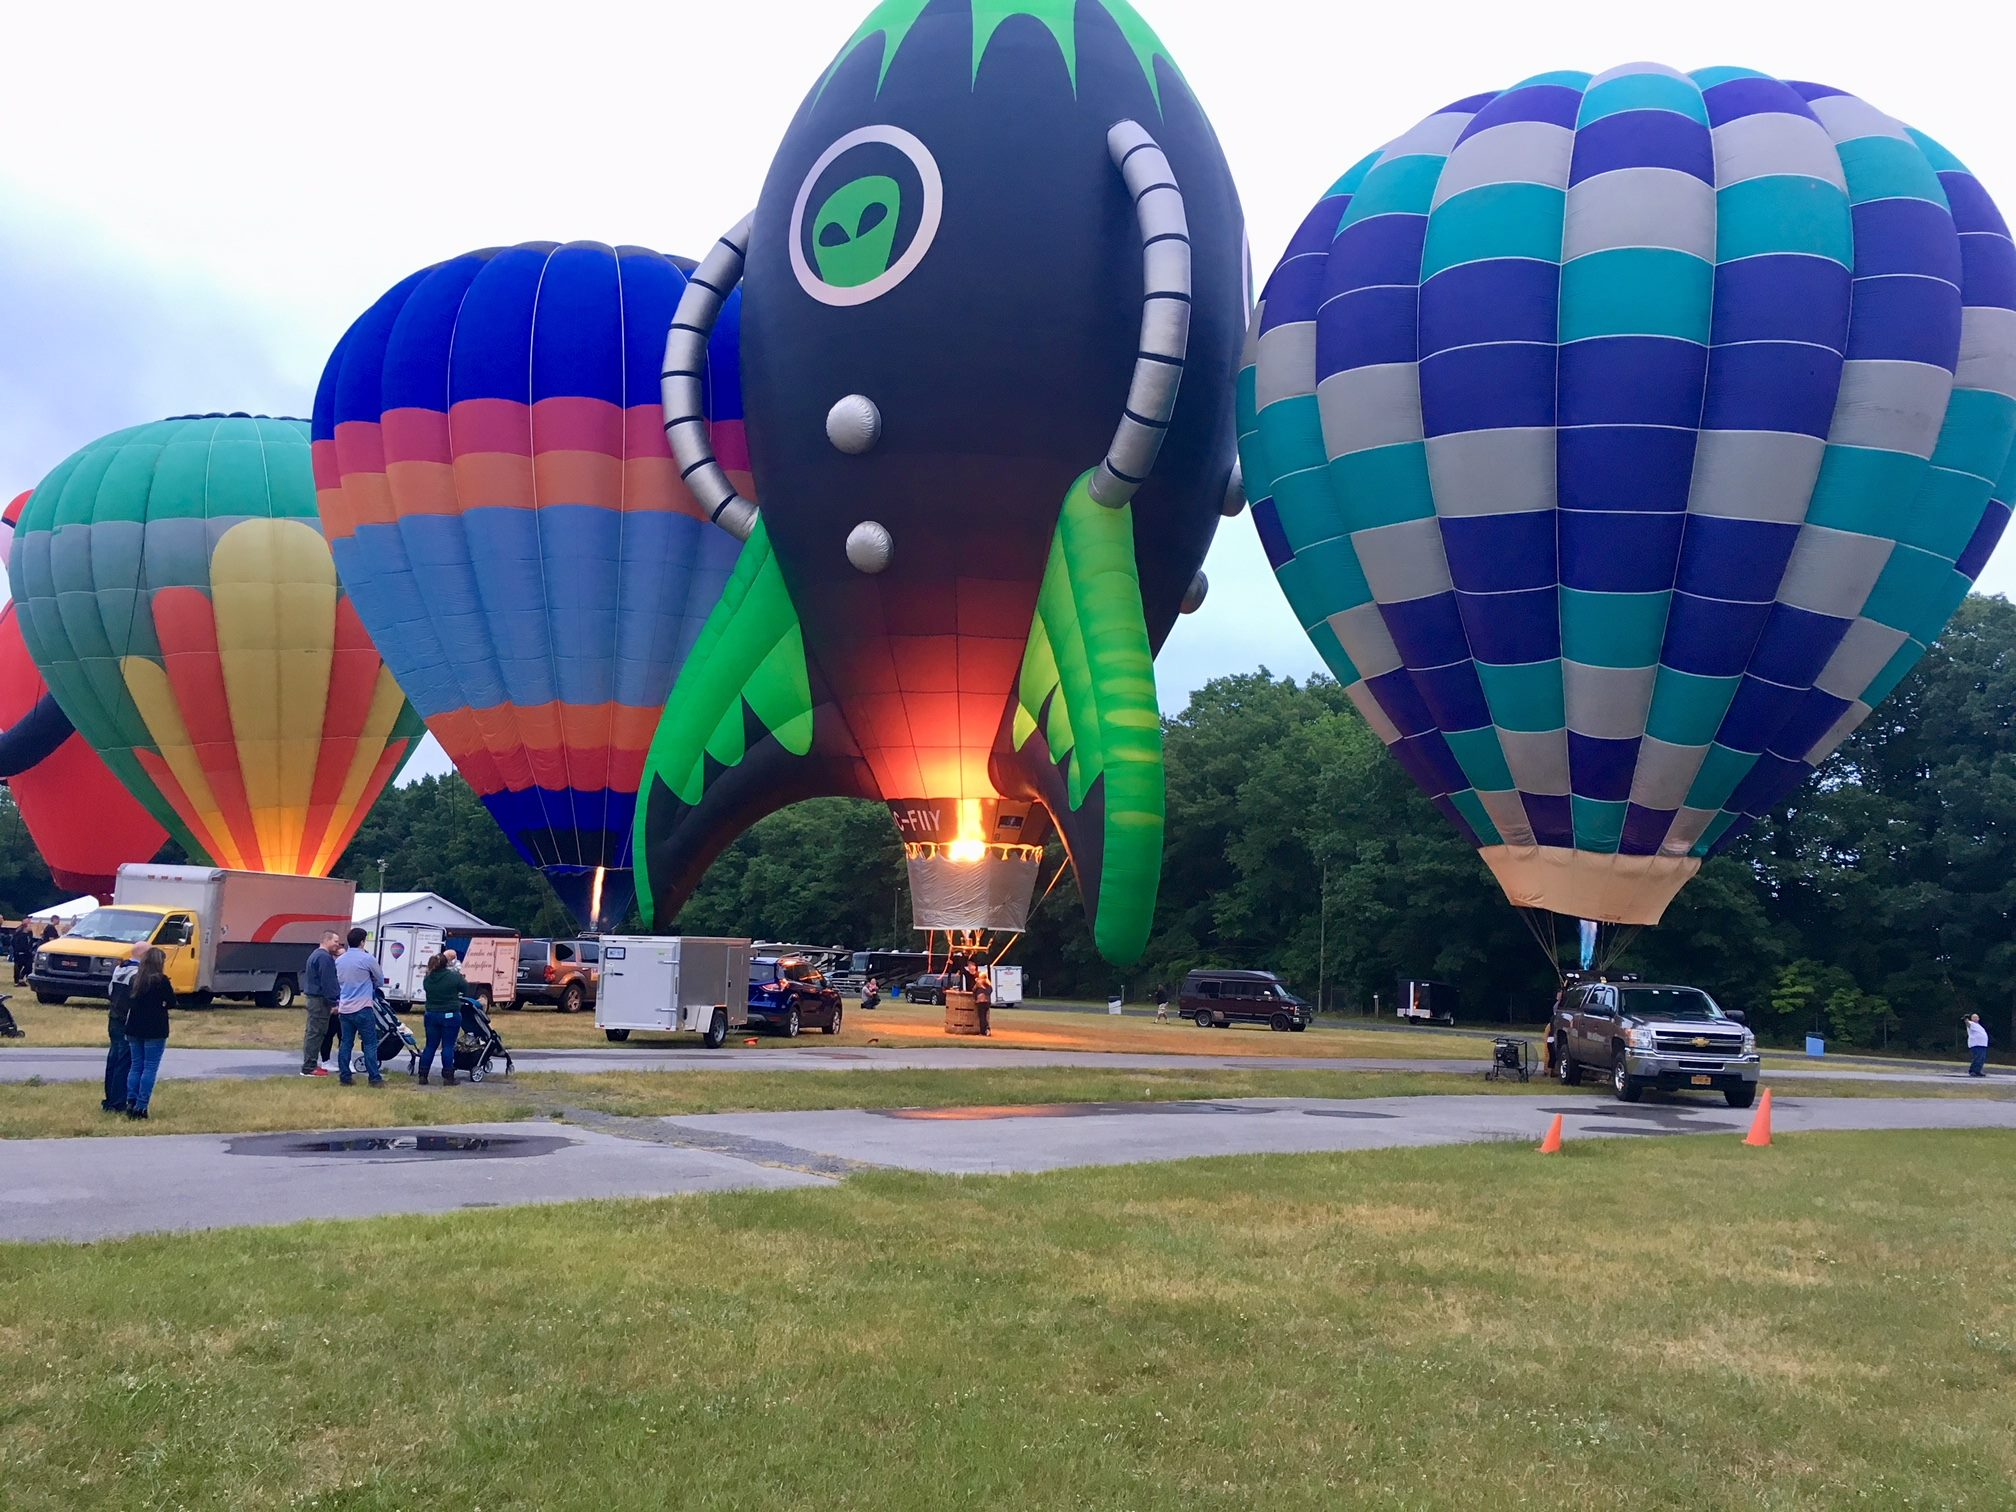 On top of BBQ, the festival will be a chance to see amazing hot air balloons up close.